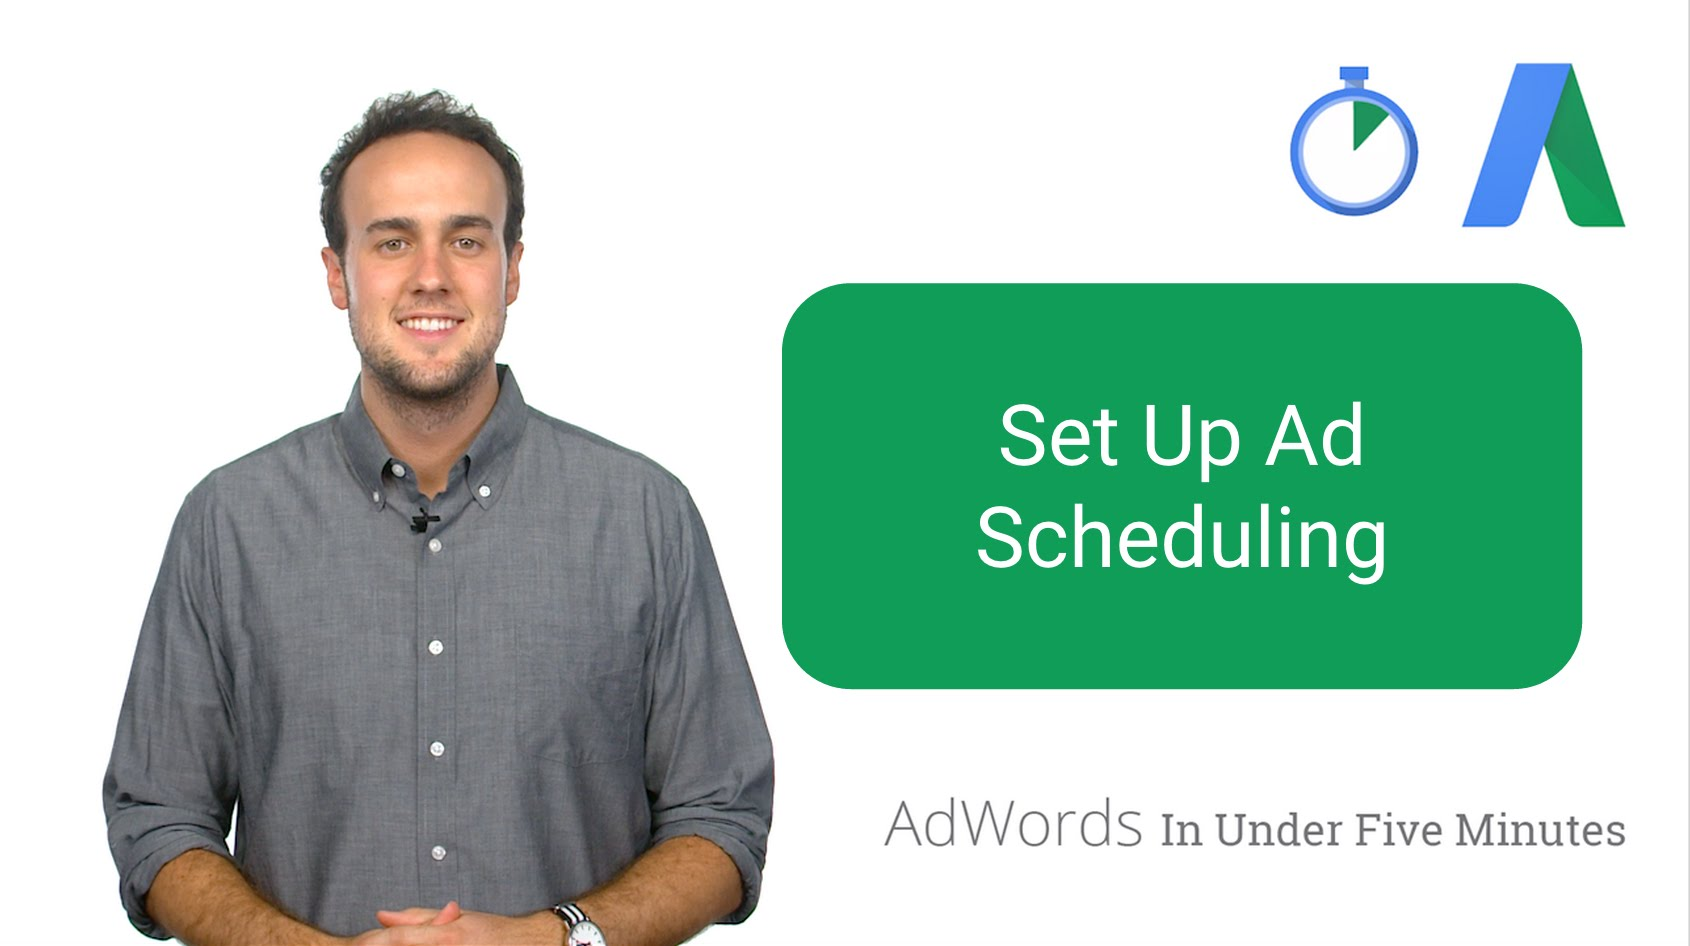 Setting Up Ad Scheduling